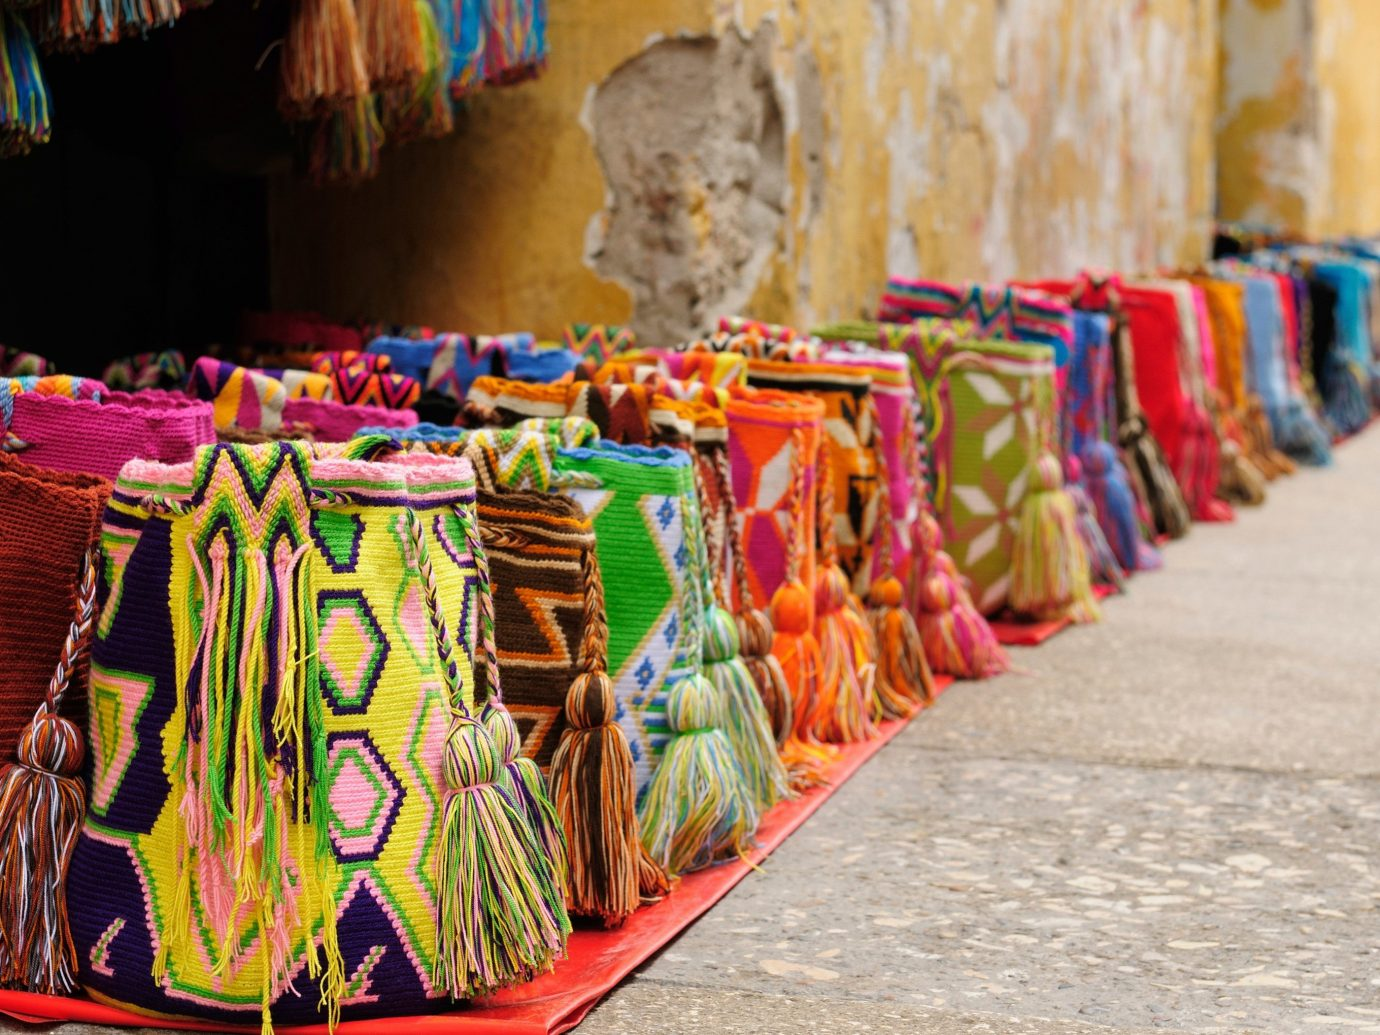 Jetsetter Guides color colorful market public space City human settlement art bazaar spring tradition decorated colored painted